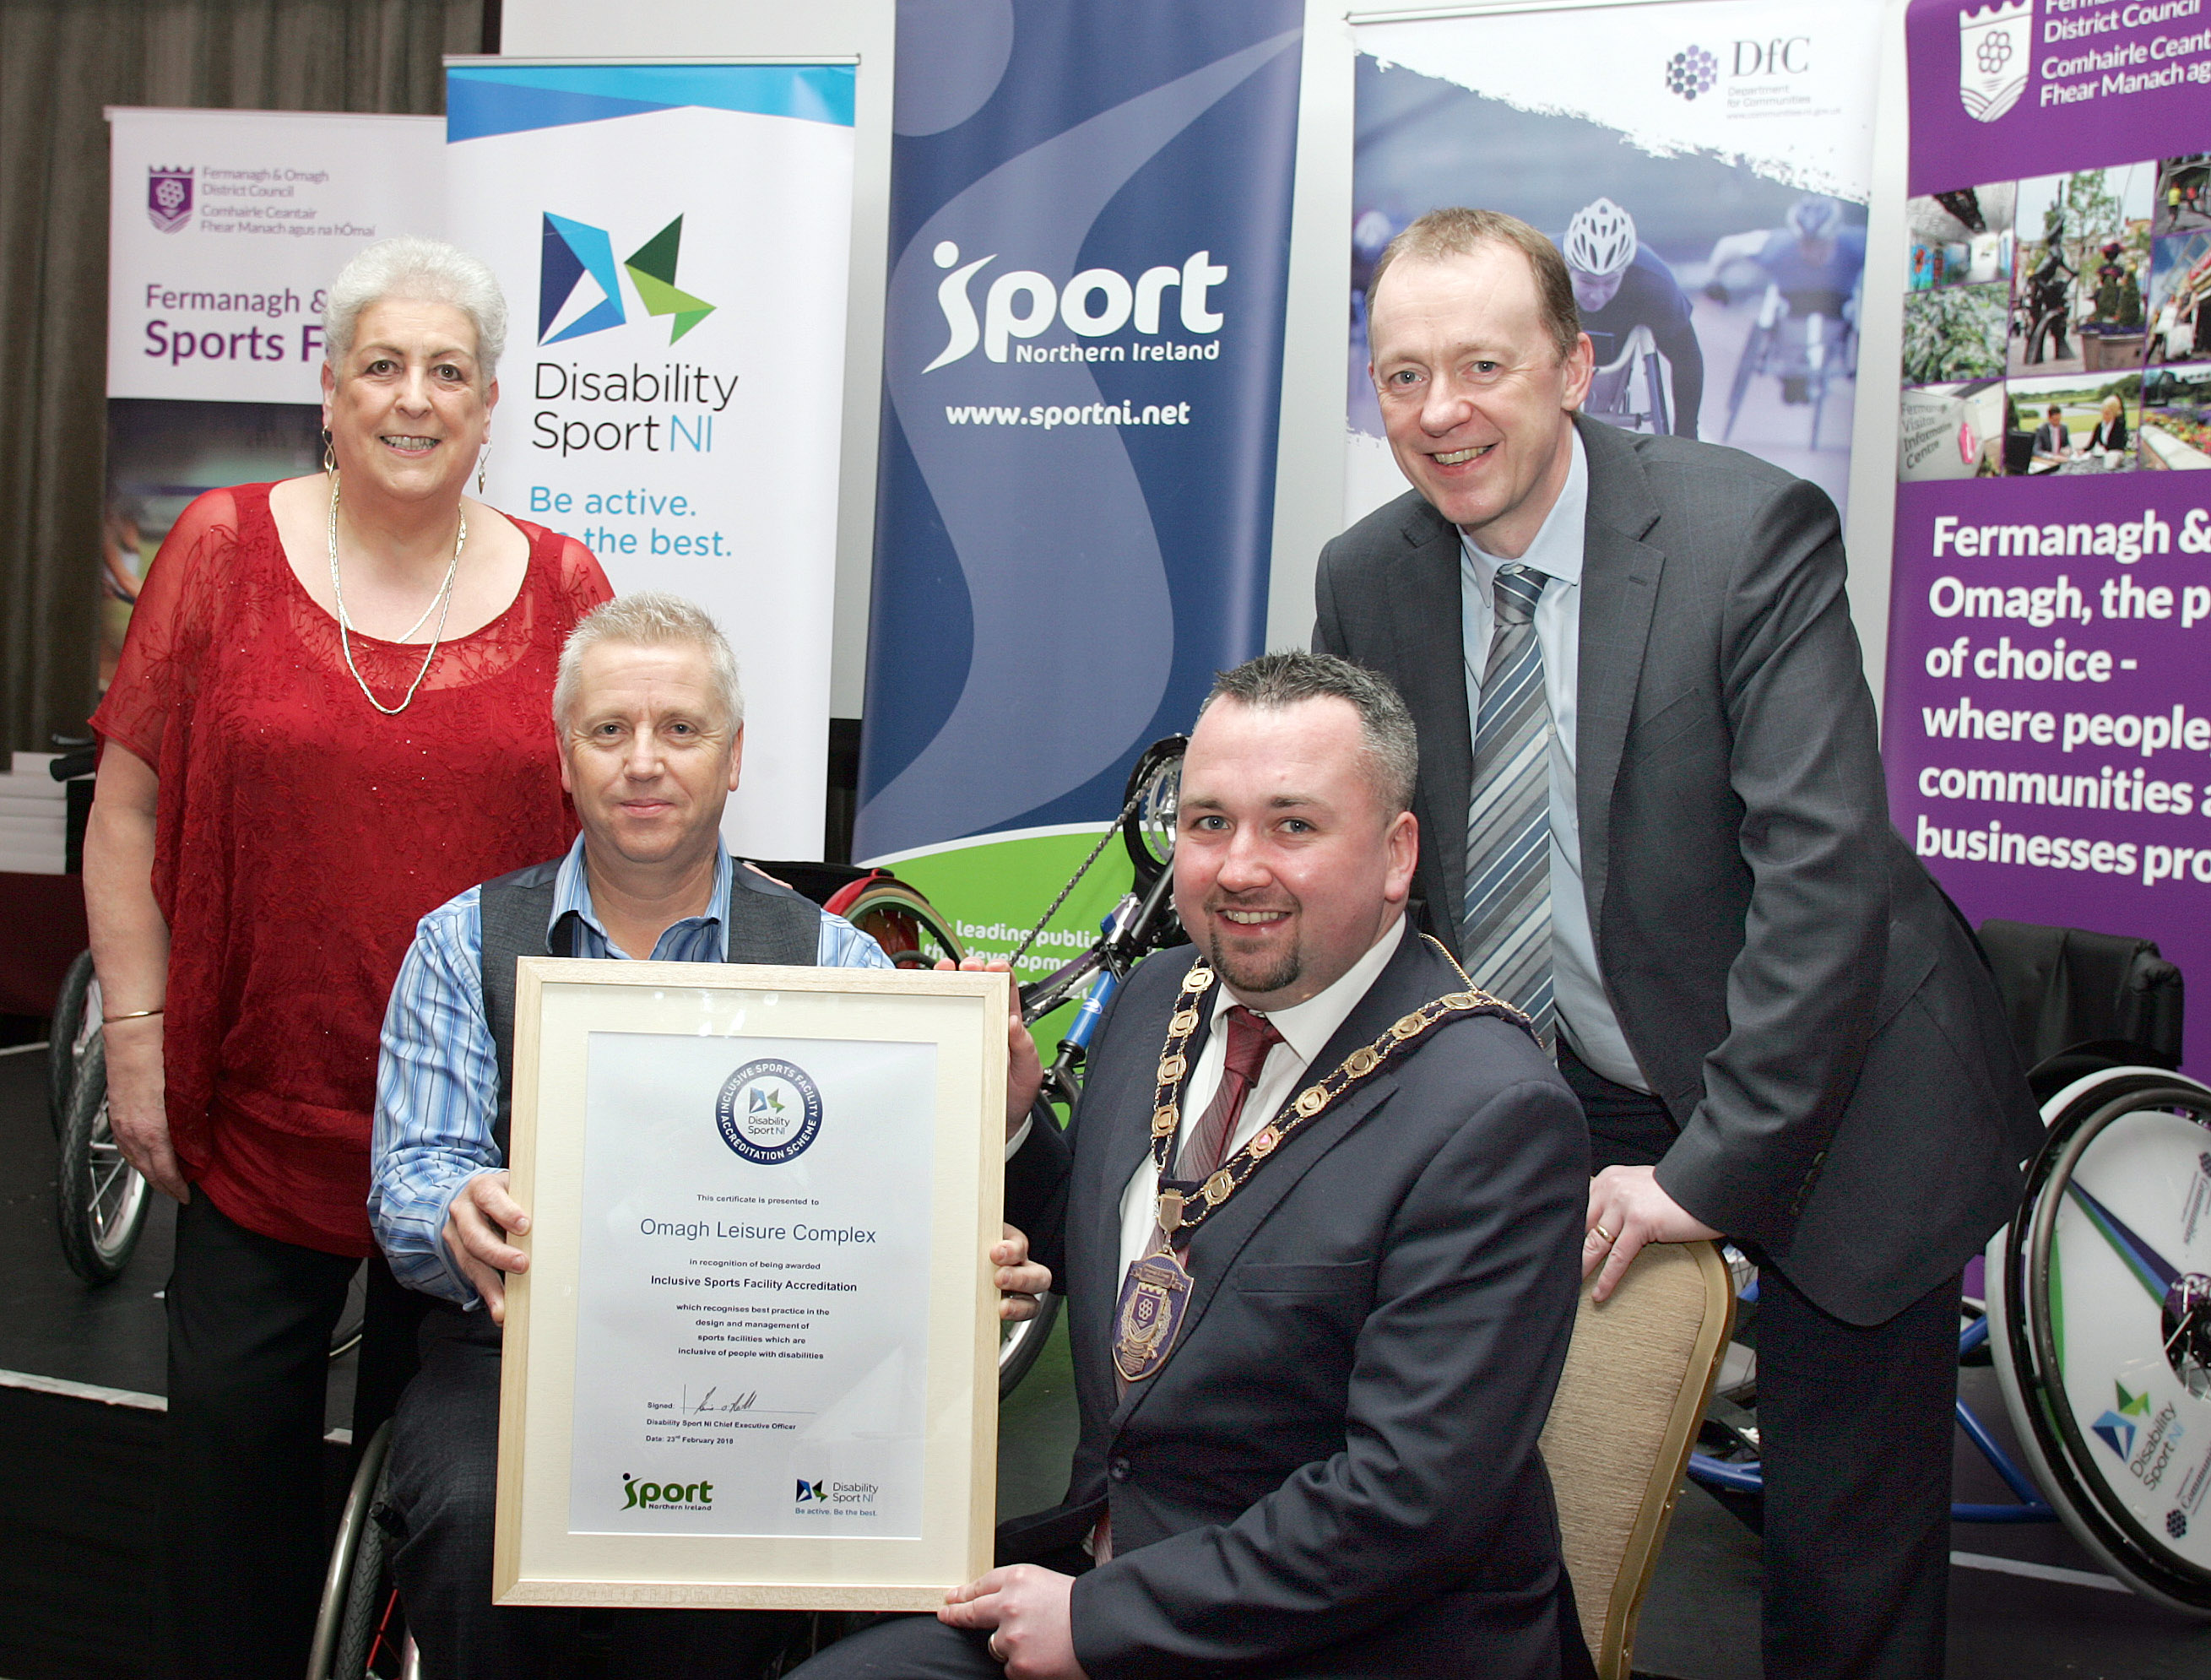 An image of representatives from the councill and Disability Sport NI holding a certificate